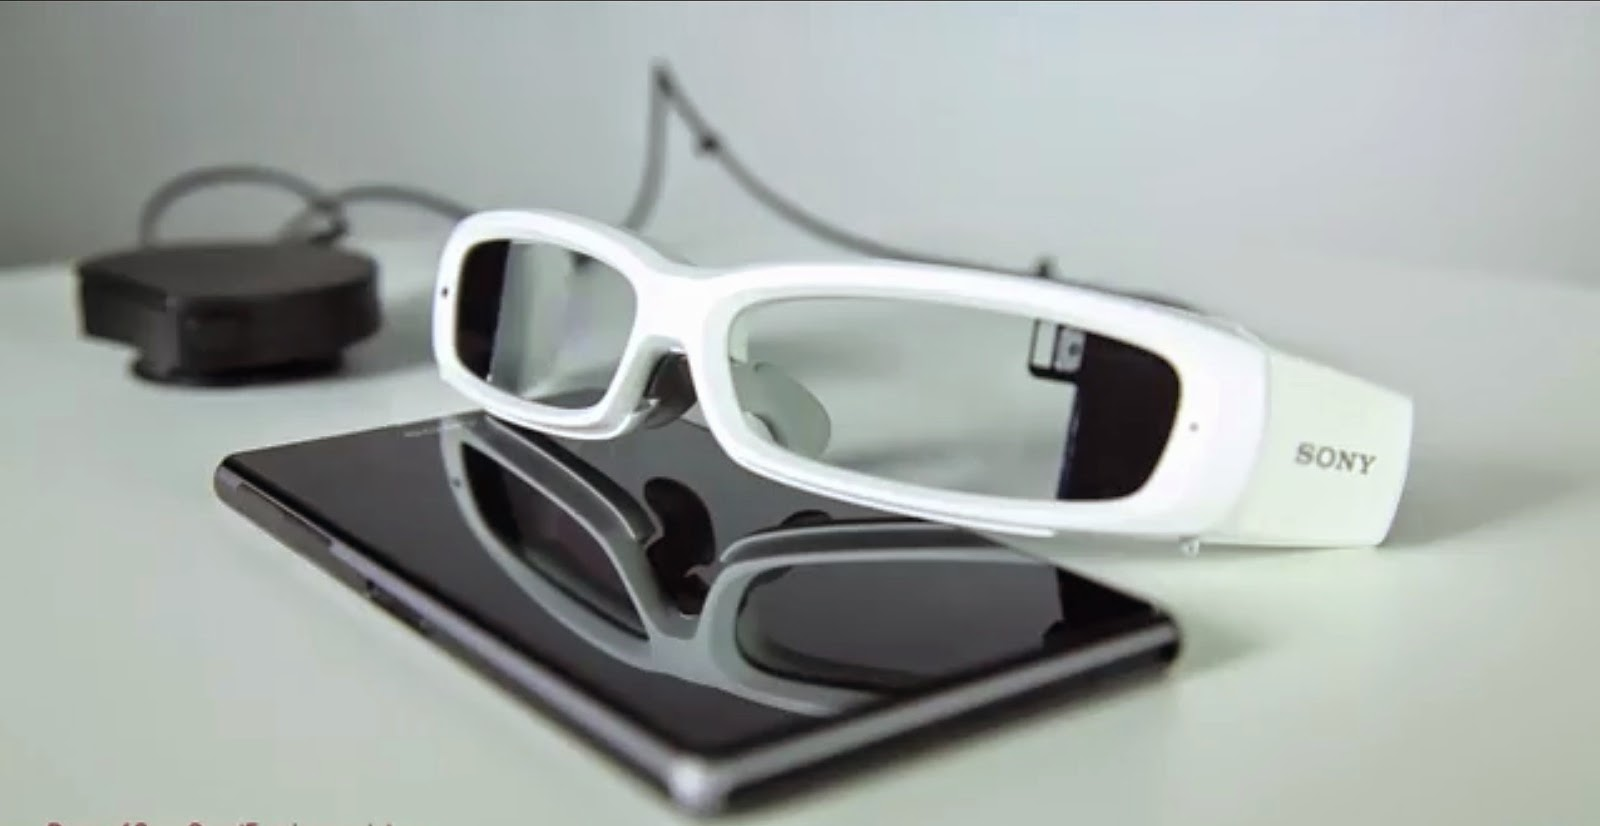 Smart eyeglass de Sony